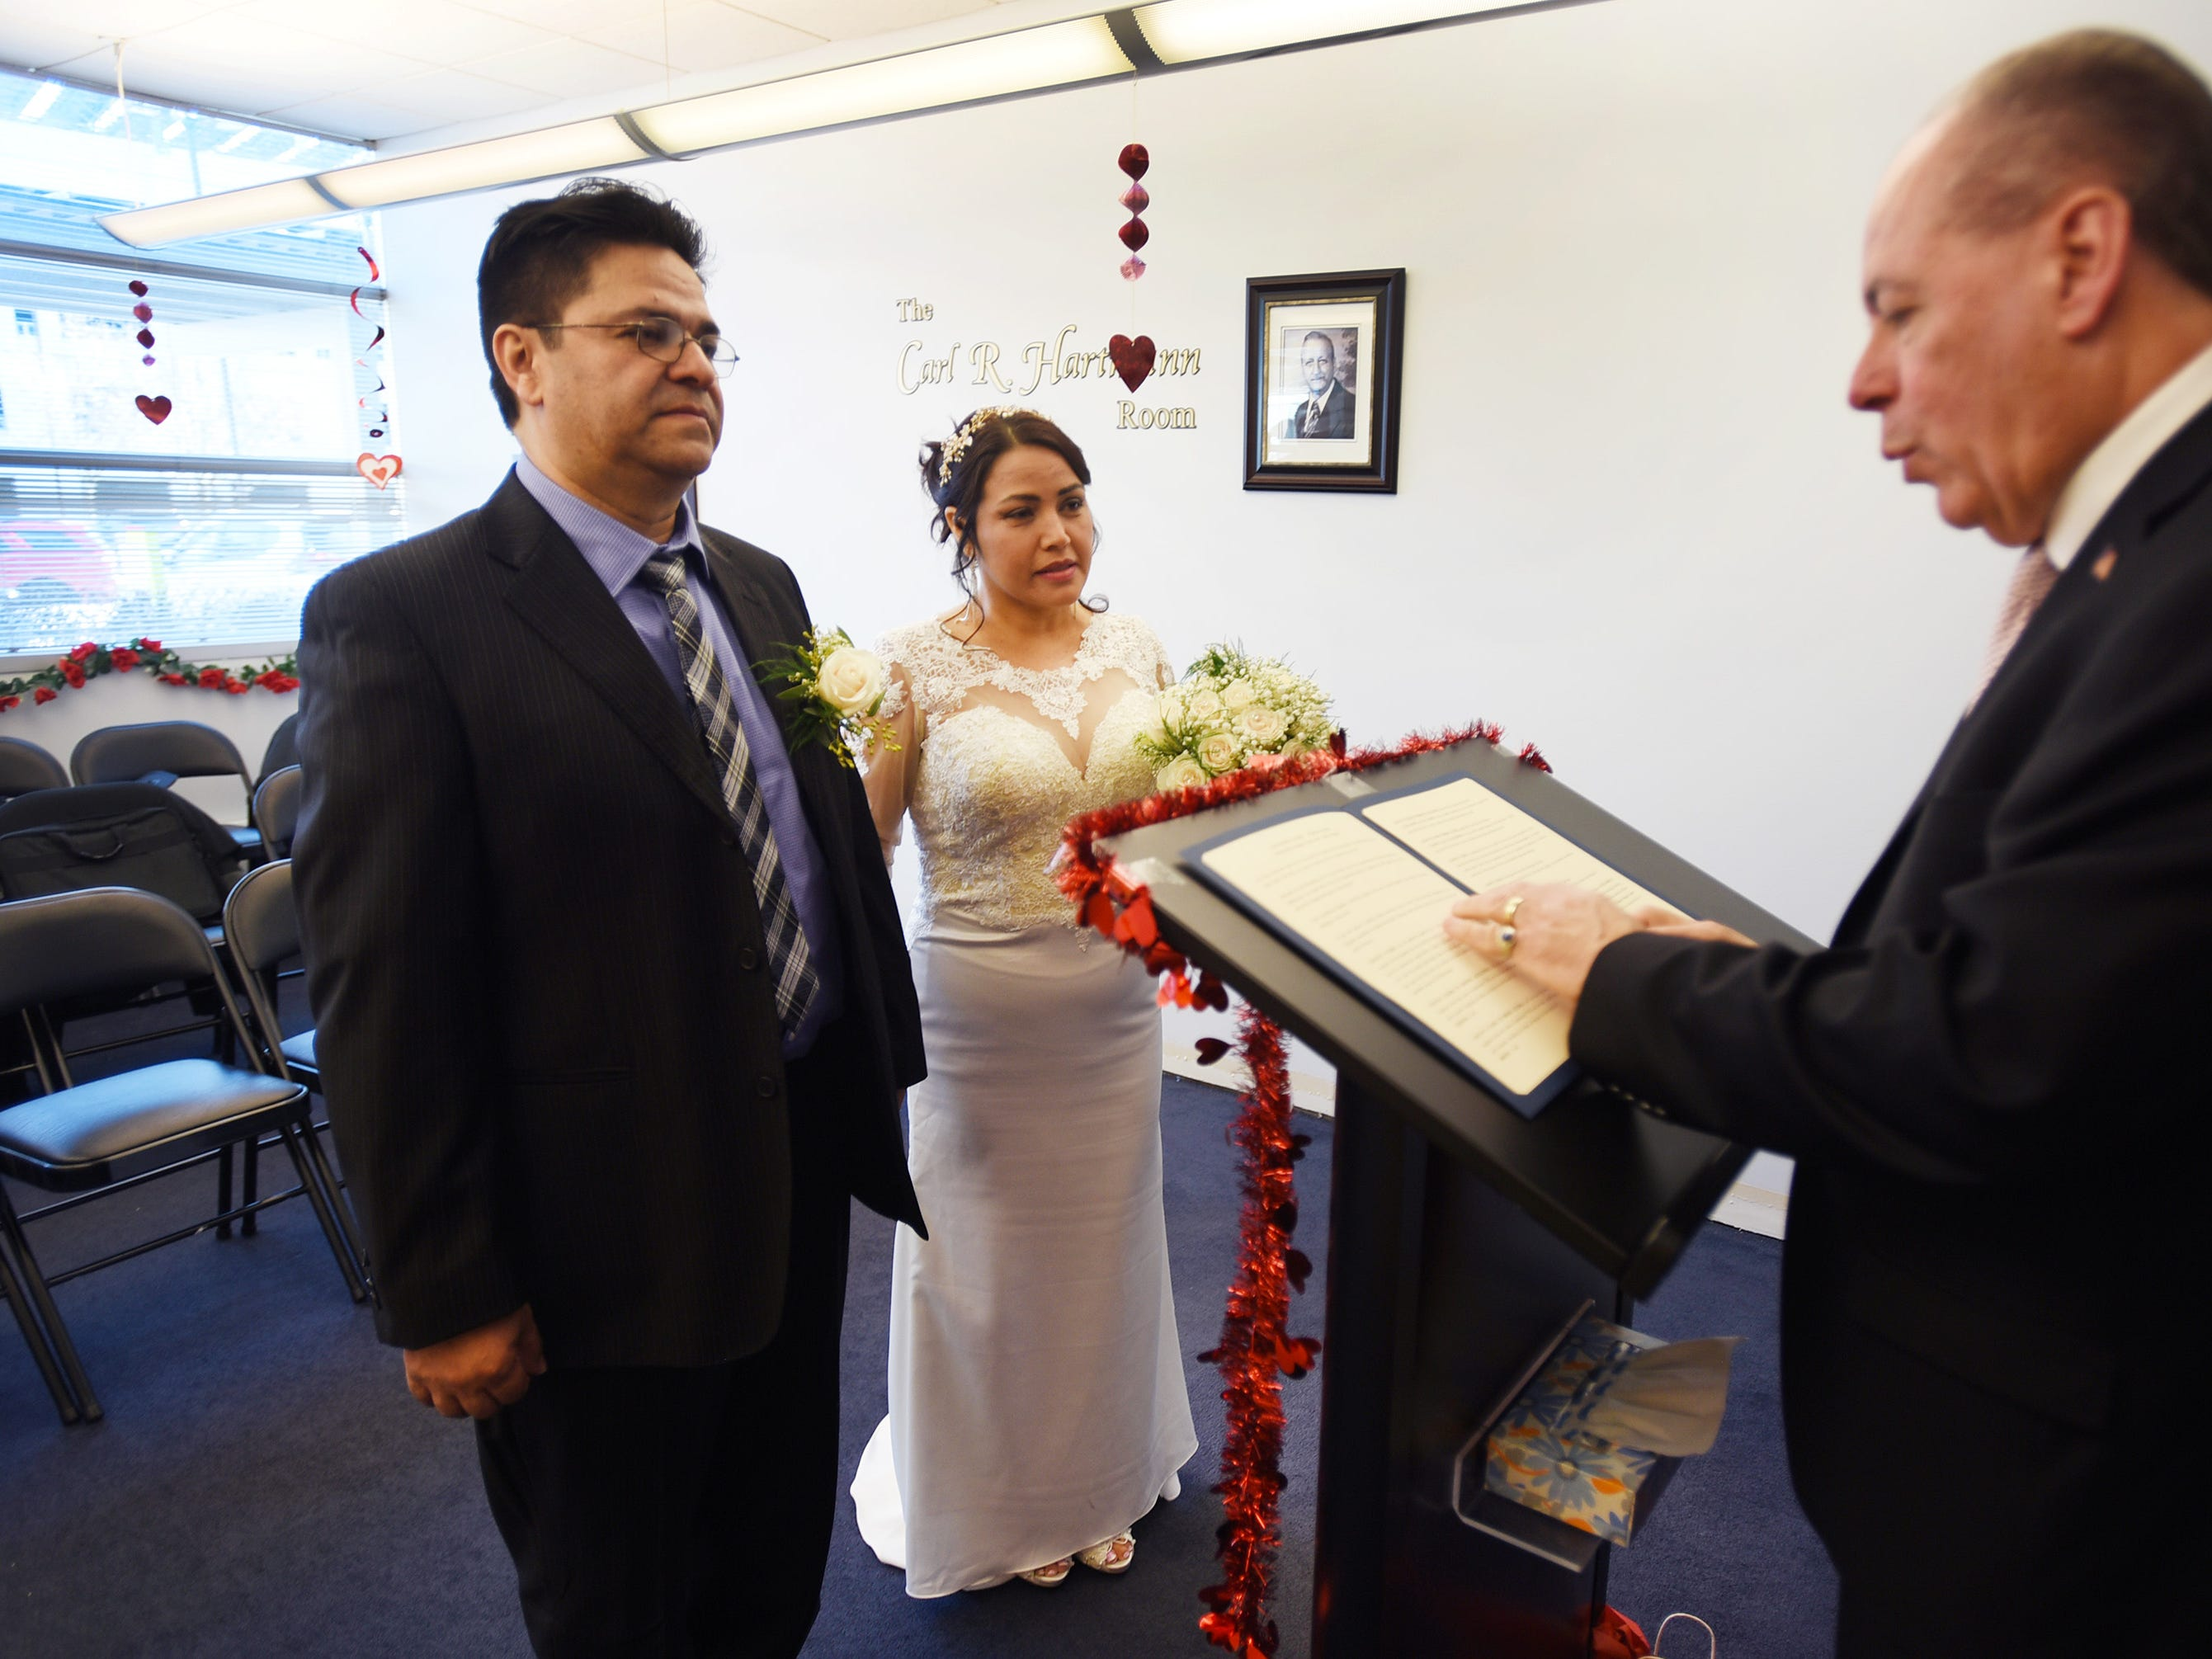 Bride and groom, Gloria Gallego and Alexander Gutierrez of Englewood, stand before Bergen County Clerk John S. Hogan during their wedding ceremony, located at Bergen County Plaza in Hackensack on 02/14/19.